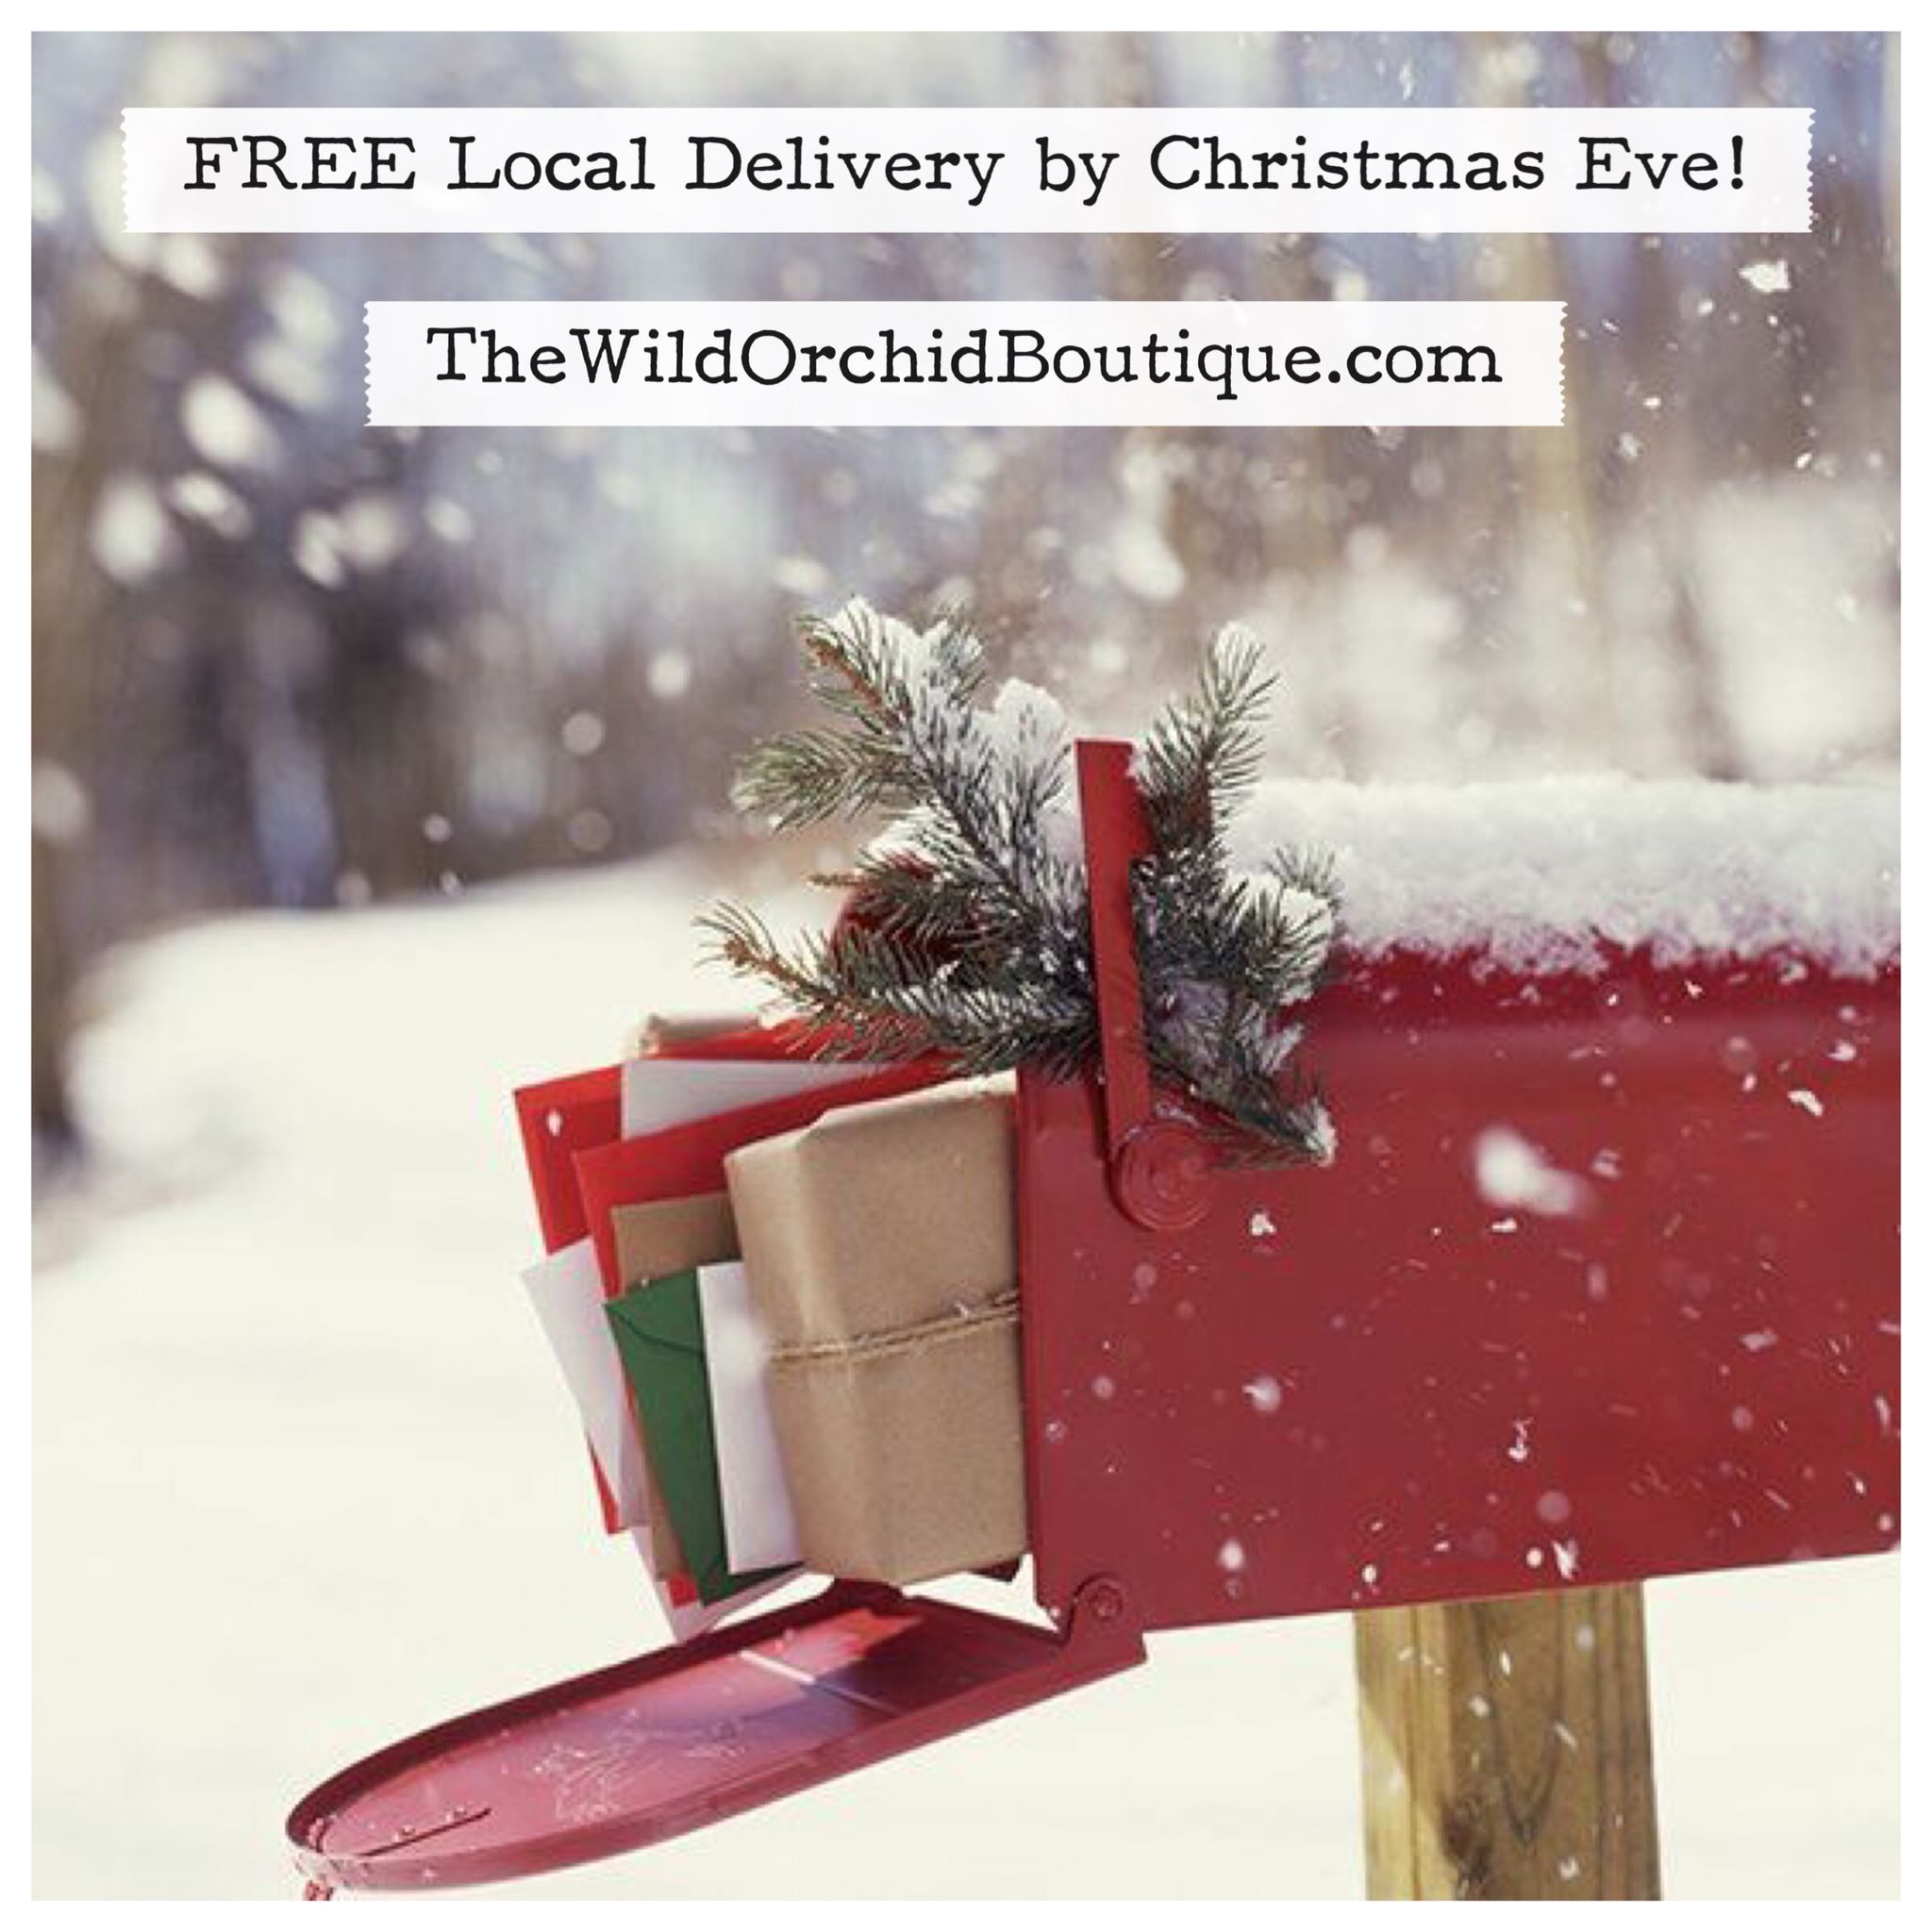 FREE Delivery by Christmas Eve within 30 minutes of Charlotte ...